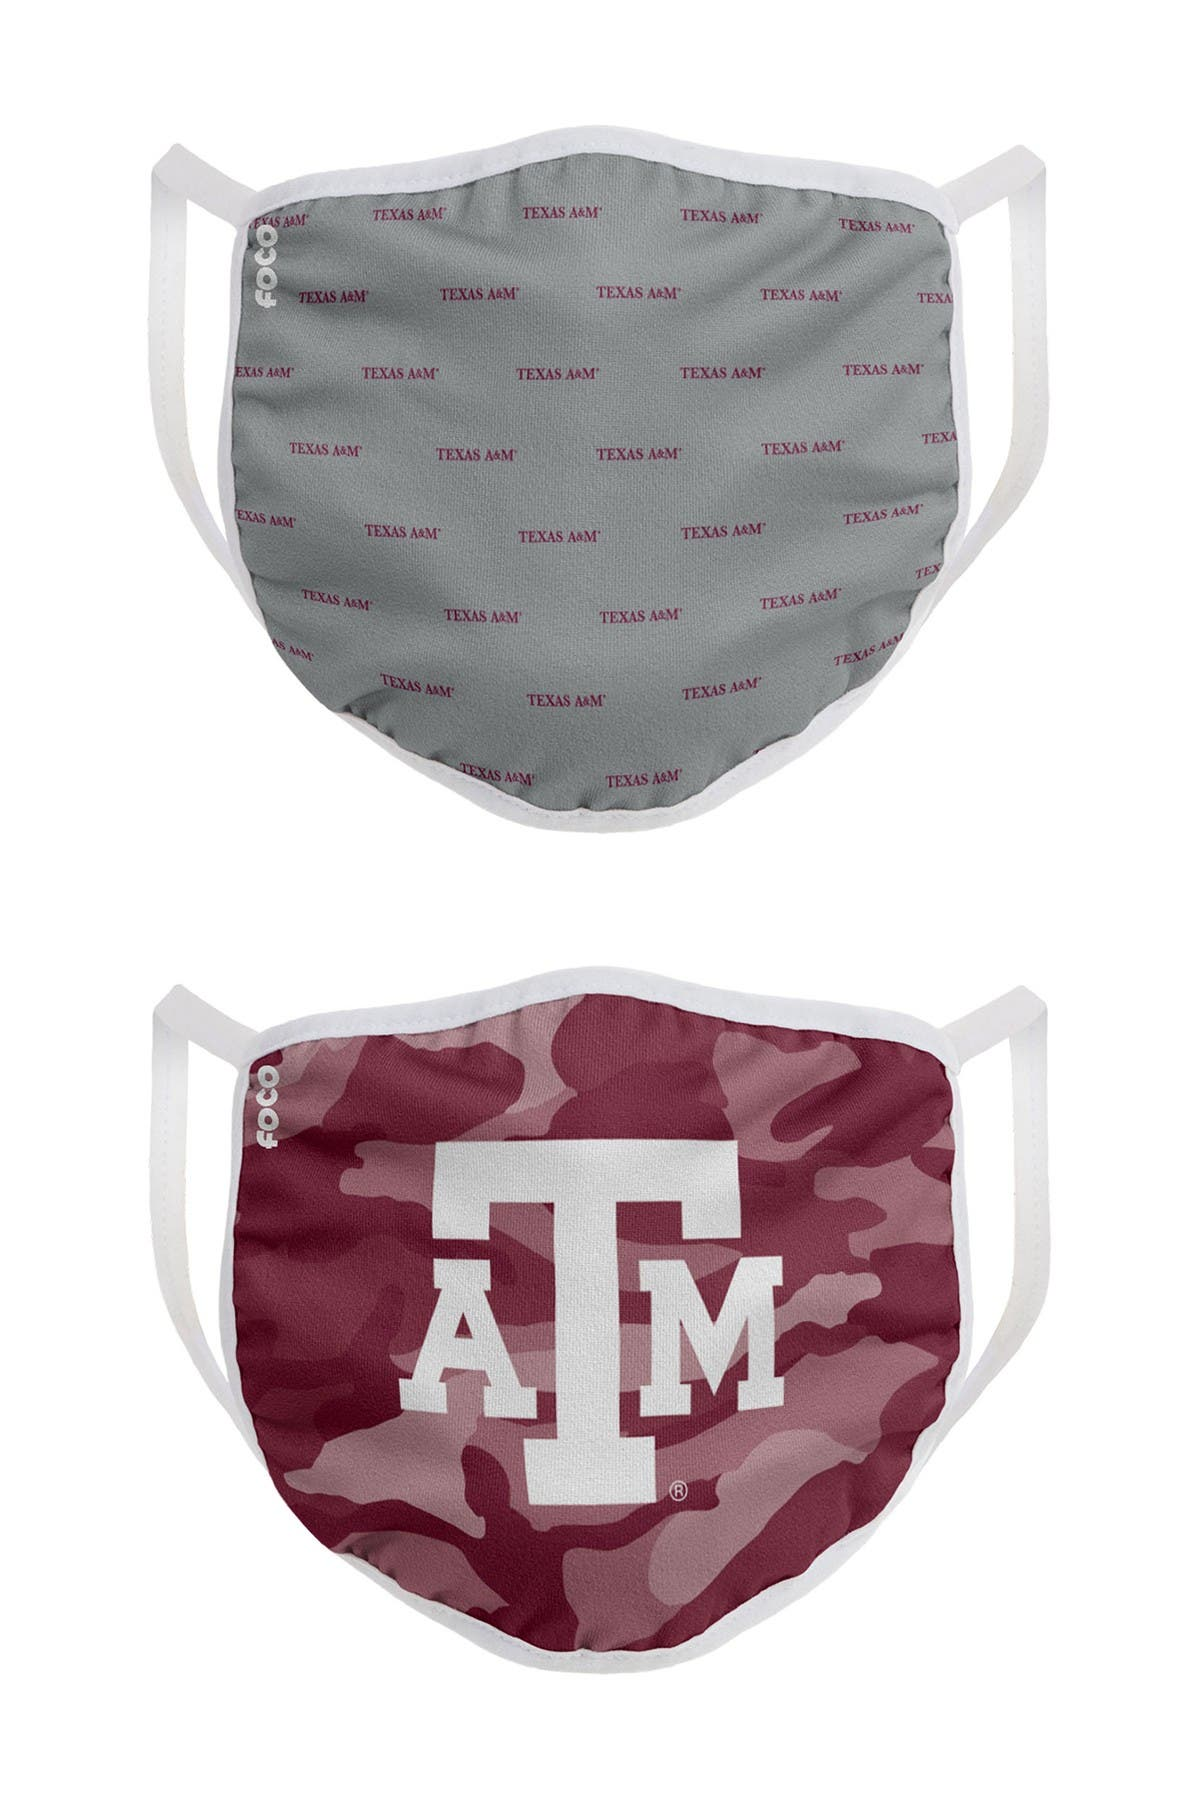 Image of FOCO NCAA Texas A&M Clutch Printed Face Cover - Pack of 2